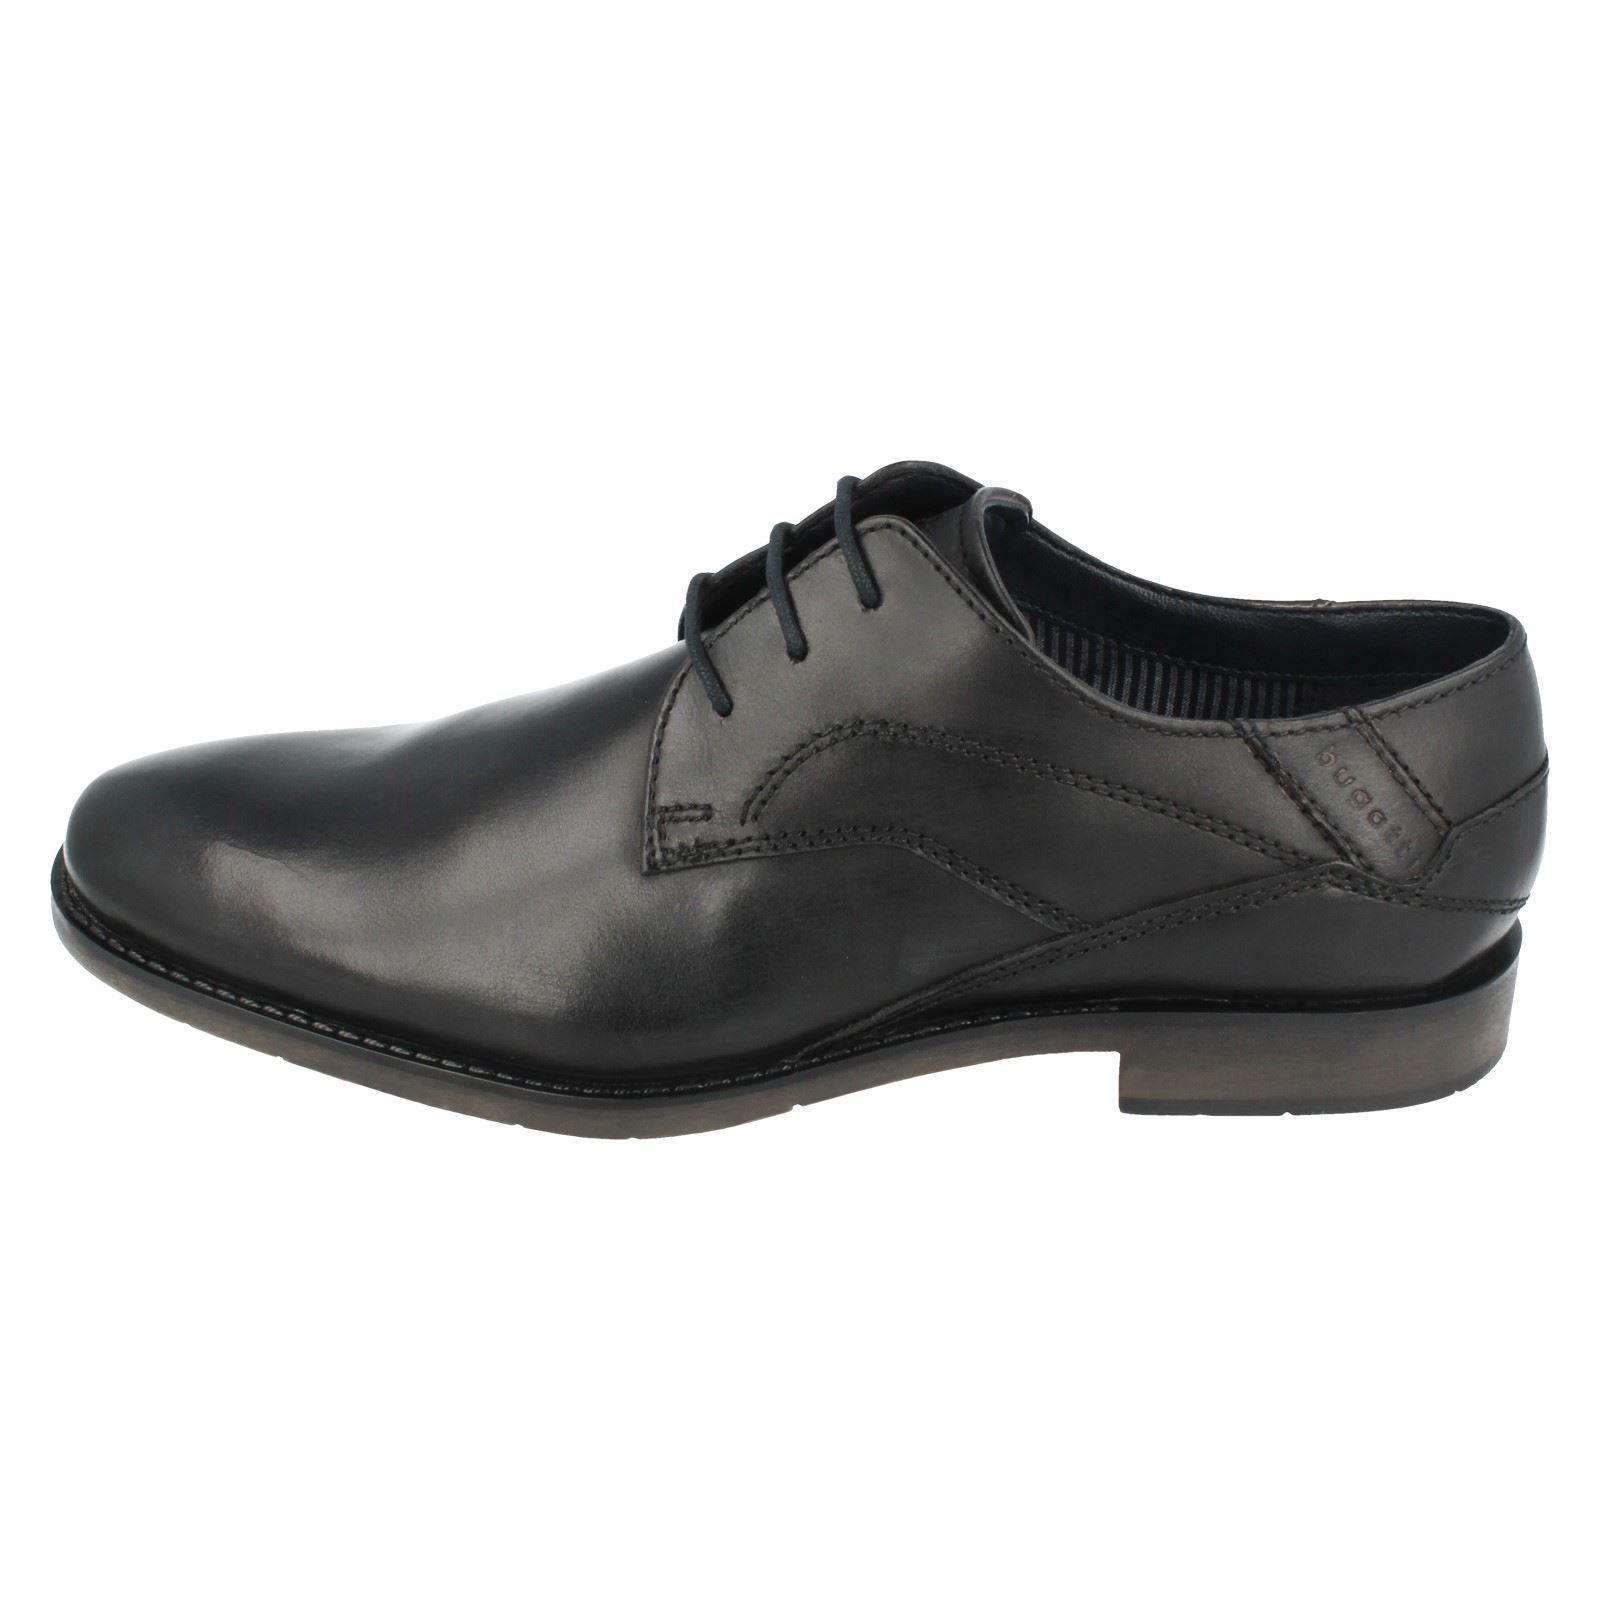 MENS CLASSIC SMART FORMAL LACE LACE LACE UP OFFICE LEATHER schuhe BUGATTI 313-23003-1000 d03593